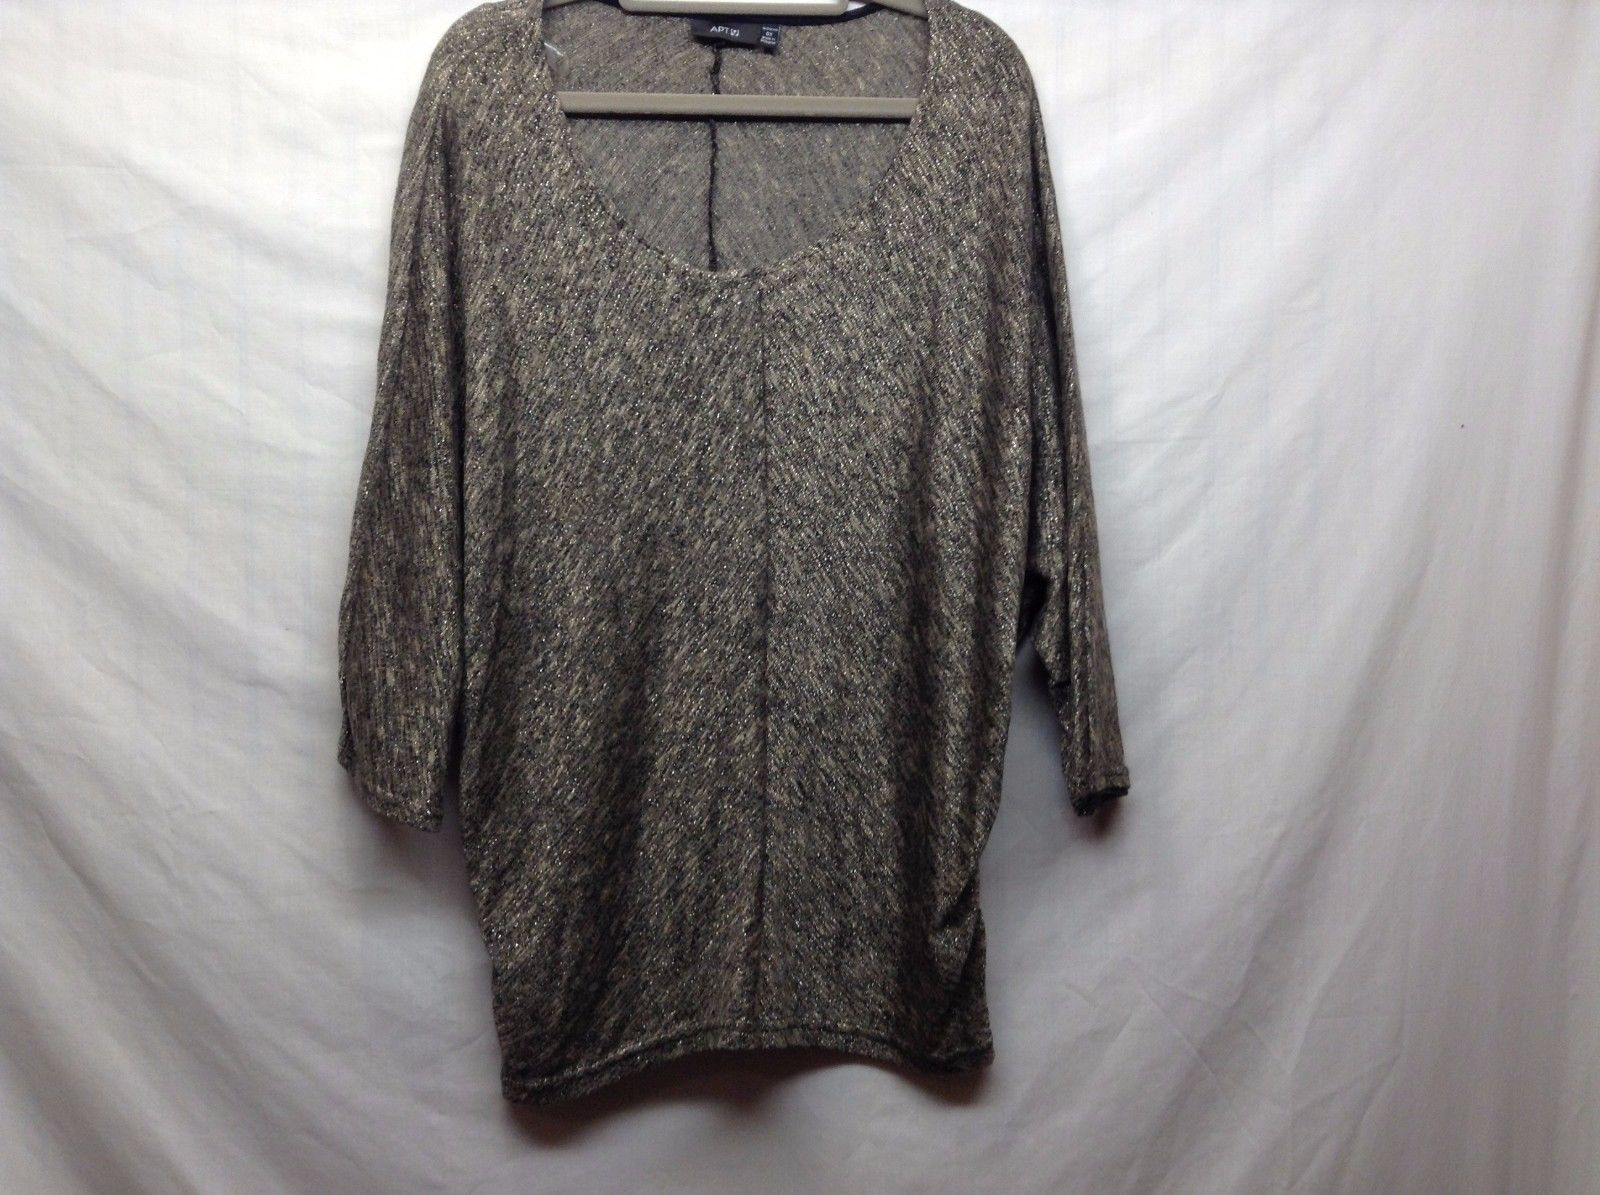 Apt 9 Women's Scoop Neck Flowy 3/4 Sleeve Top Sz 0X